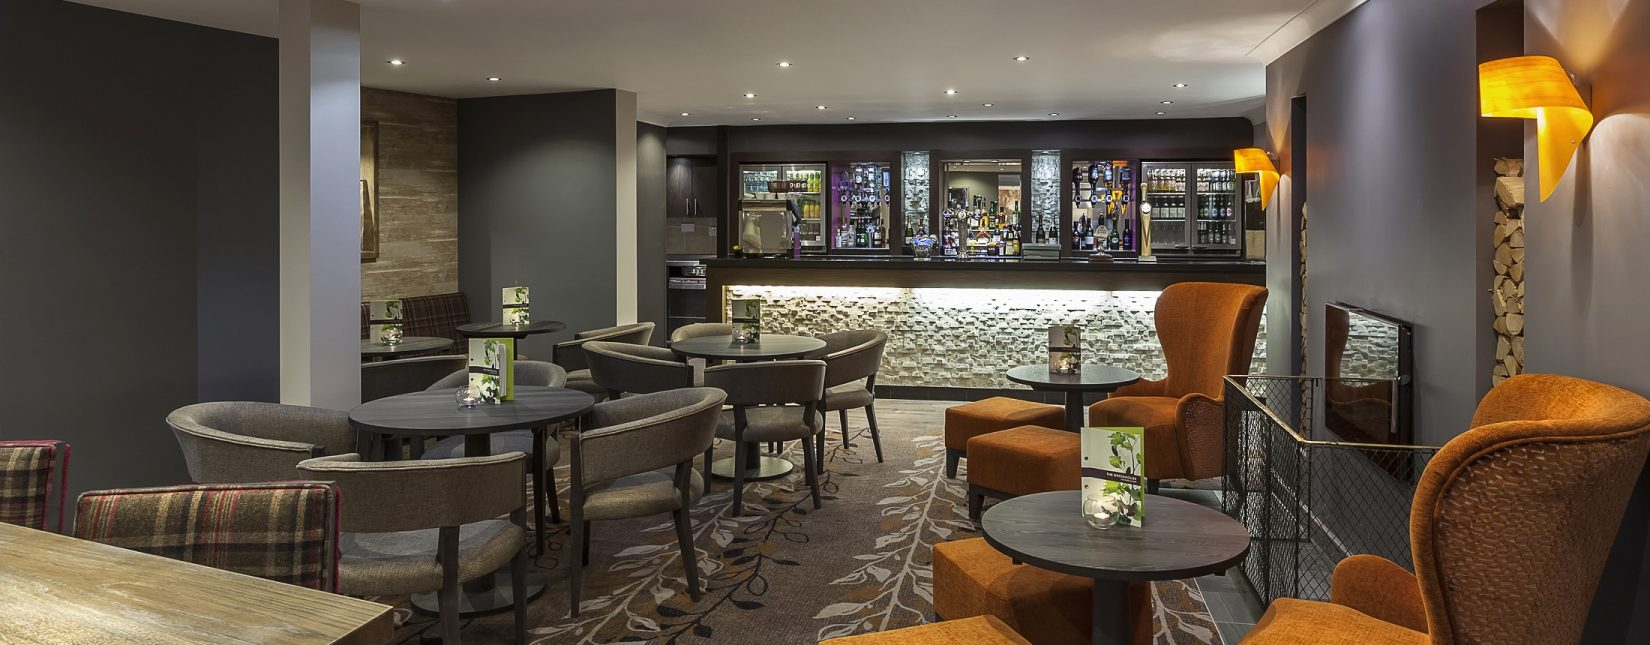 Greenhouse Bar at the Castle Green Hotel in Kendal